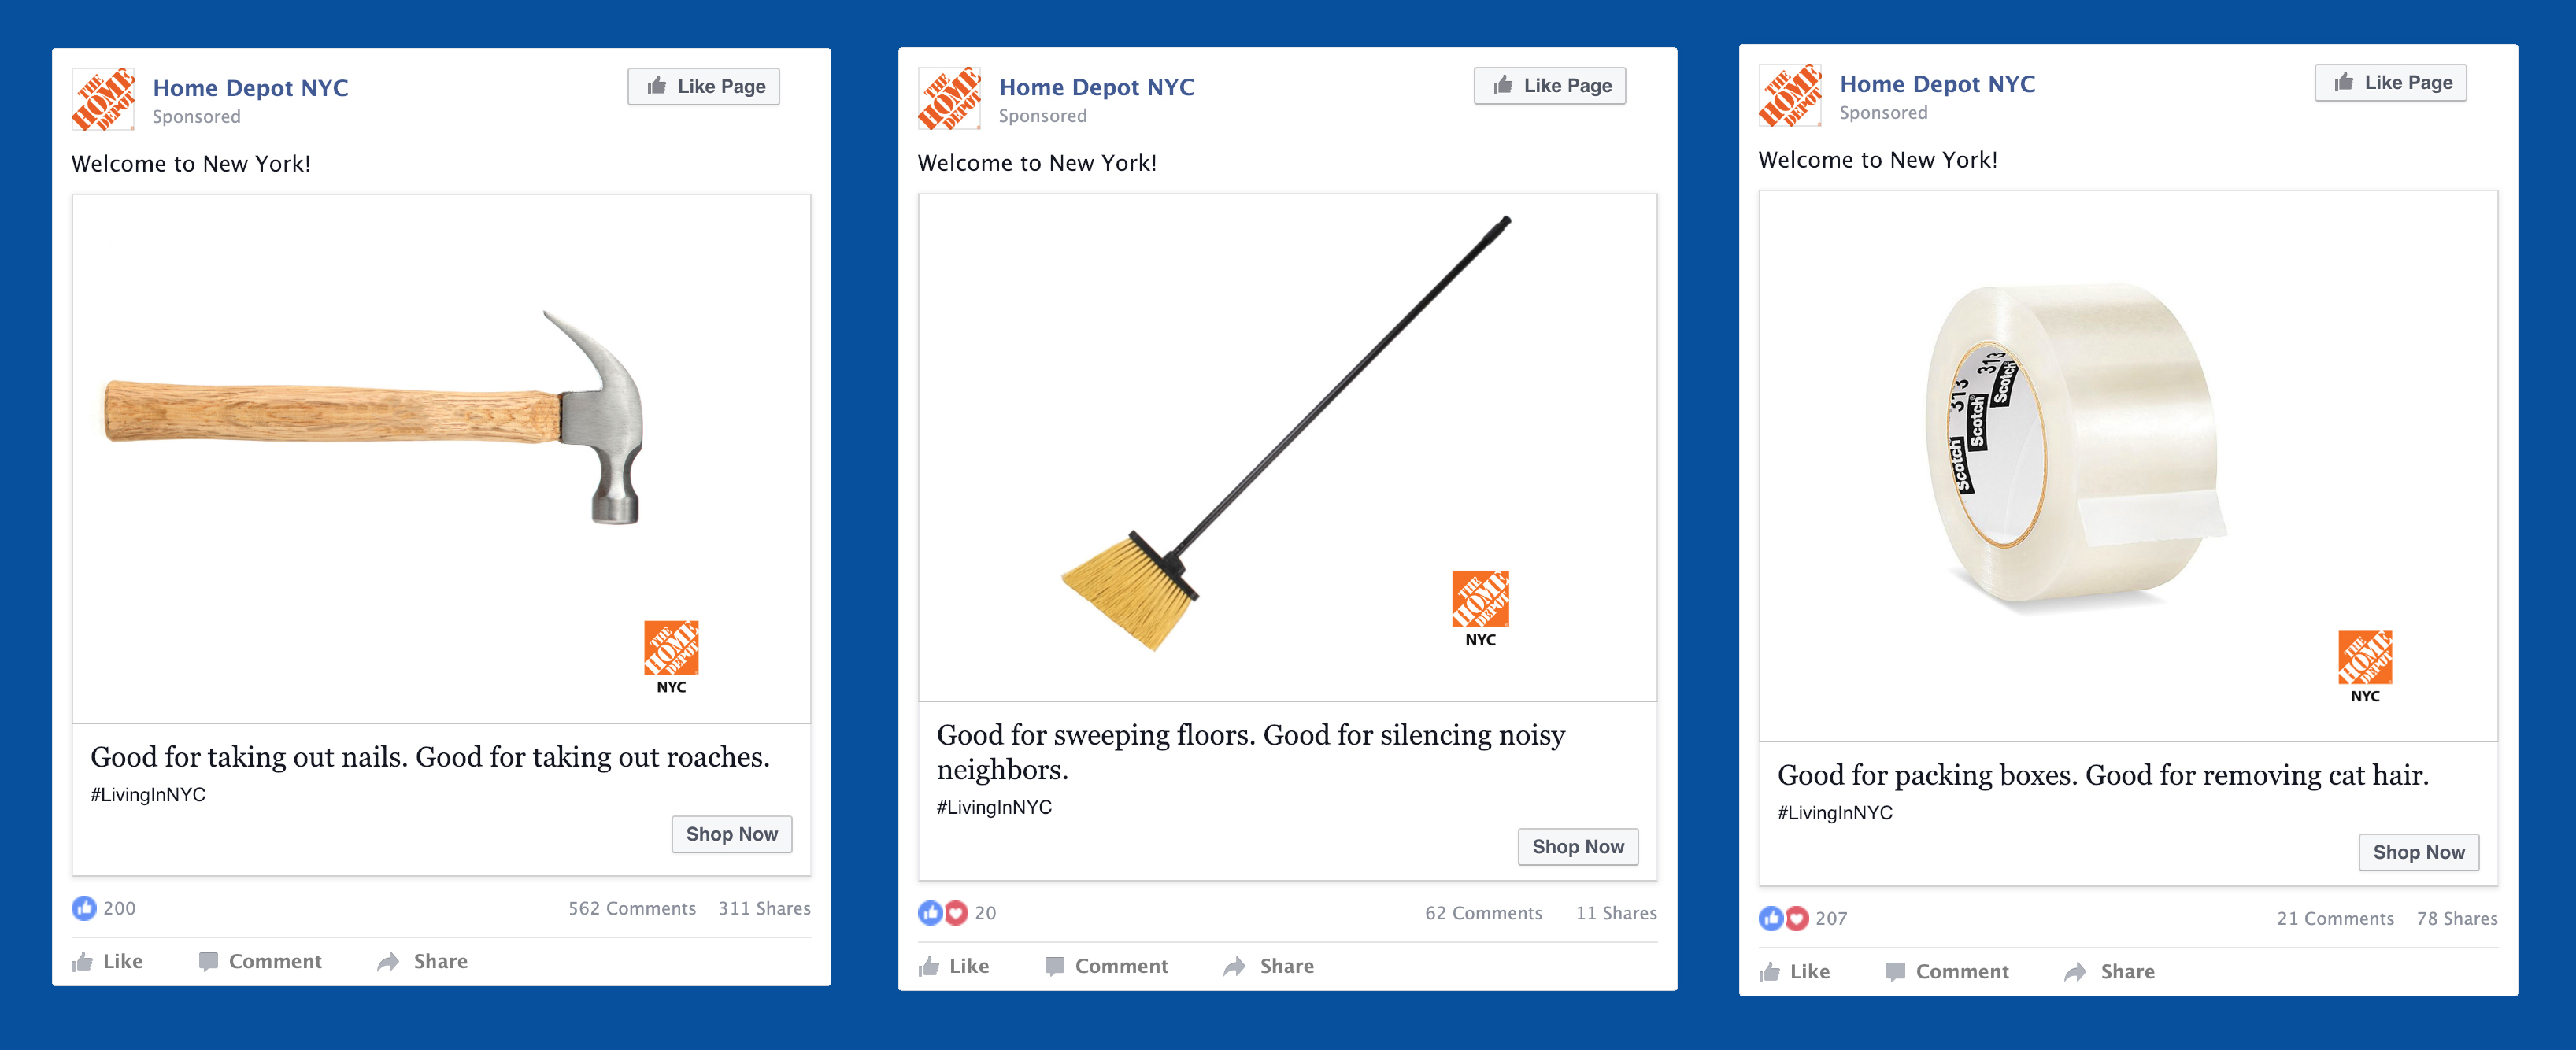 Facebook Advertising - Home Depot NY